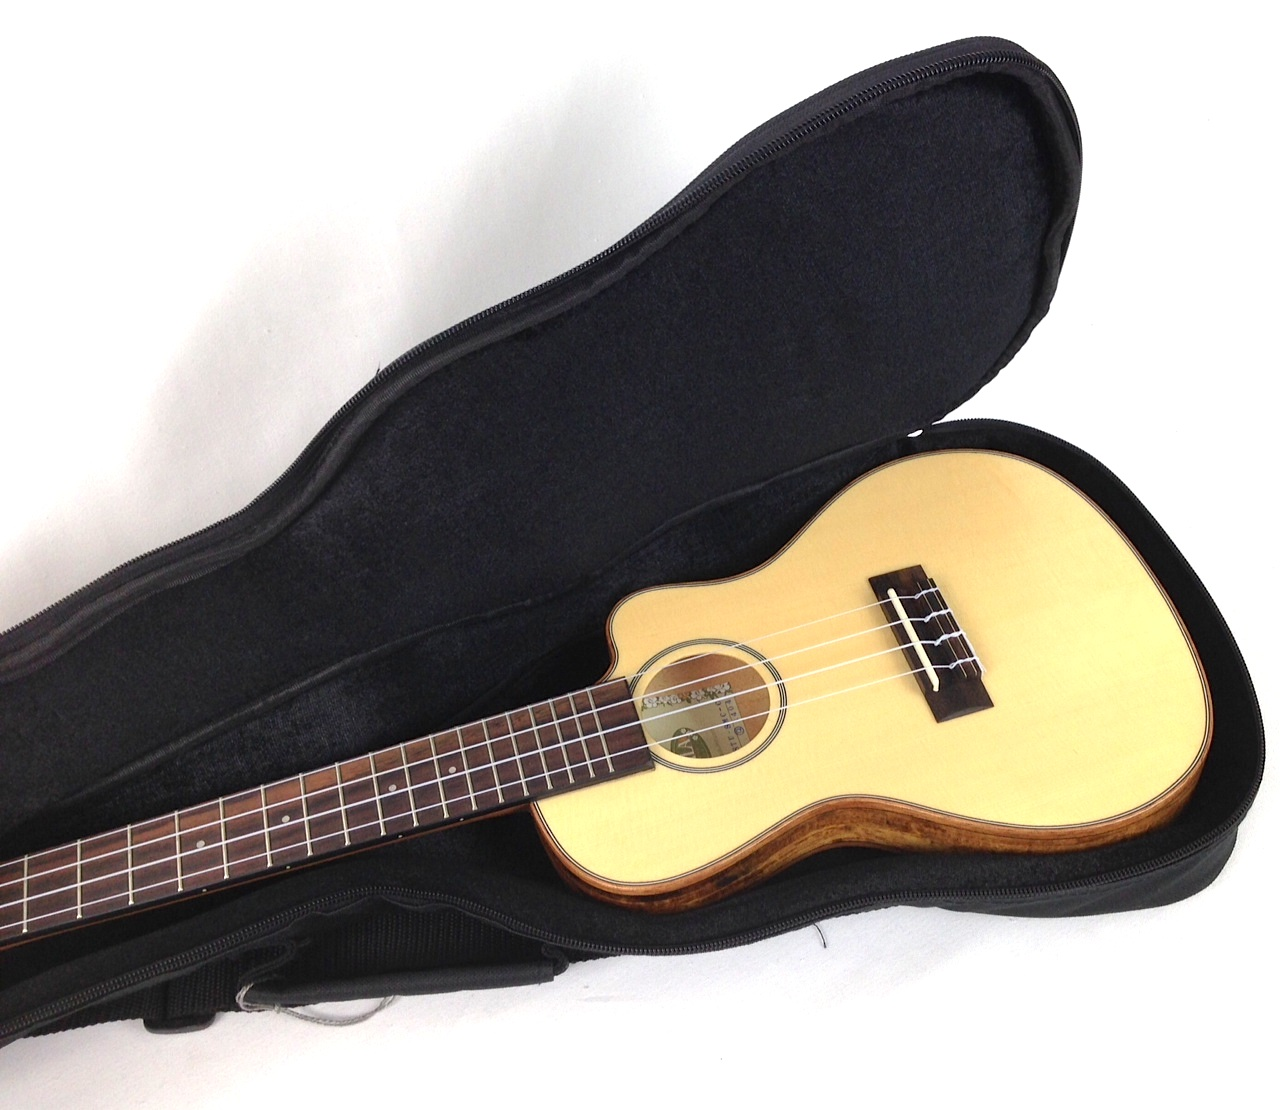 Dean Guitars Ukulele Travel Uke: Kala Thinline Travel Ukulele